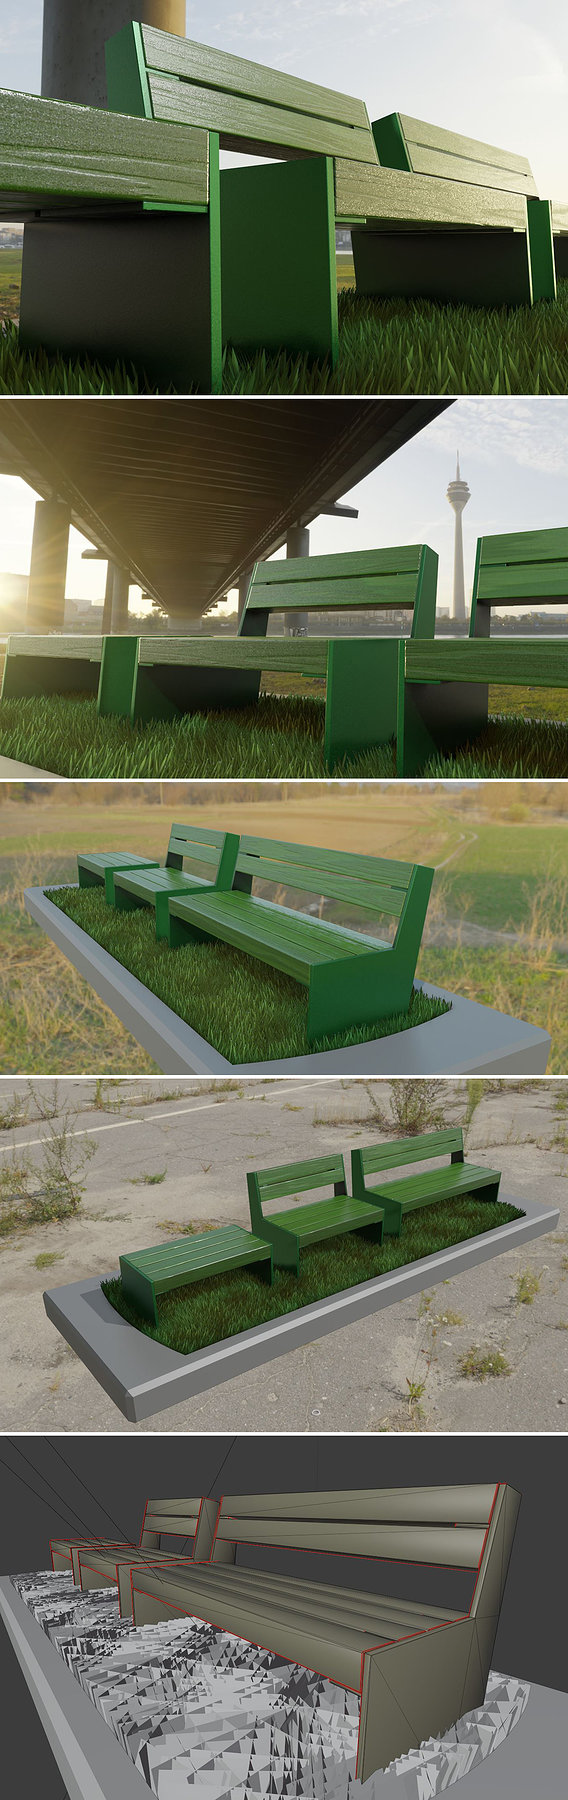 Park Bench [8] Green |Low Poly Version|